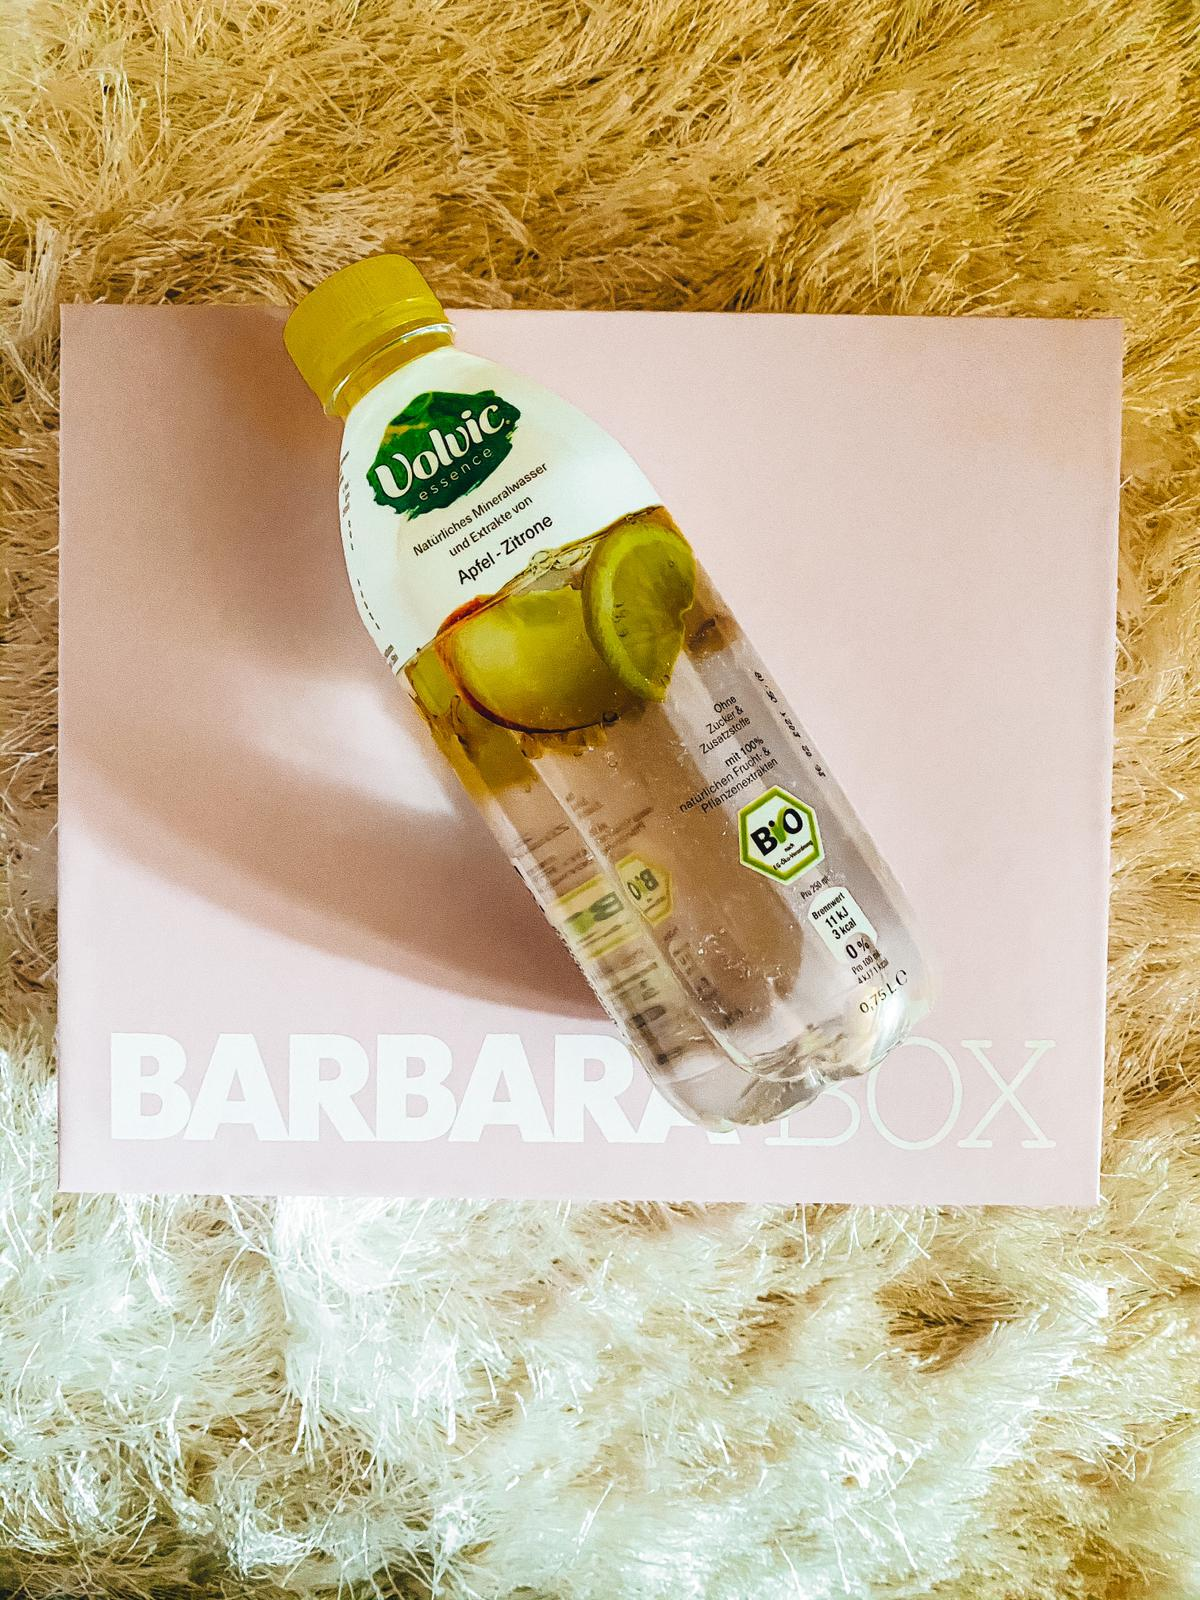 Barbara Box Summer Power - Volvic